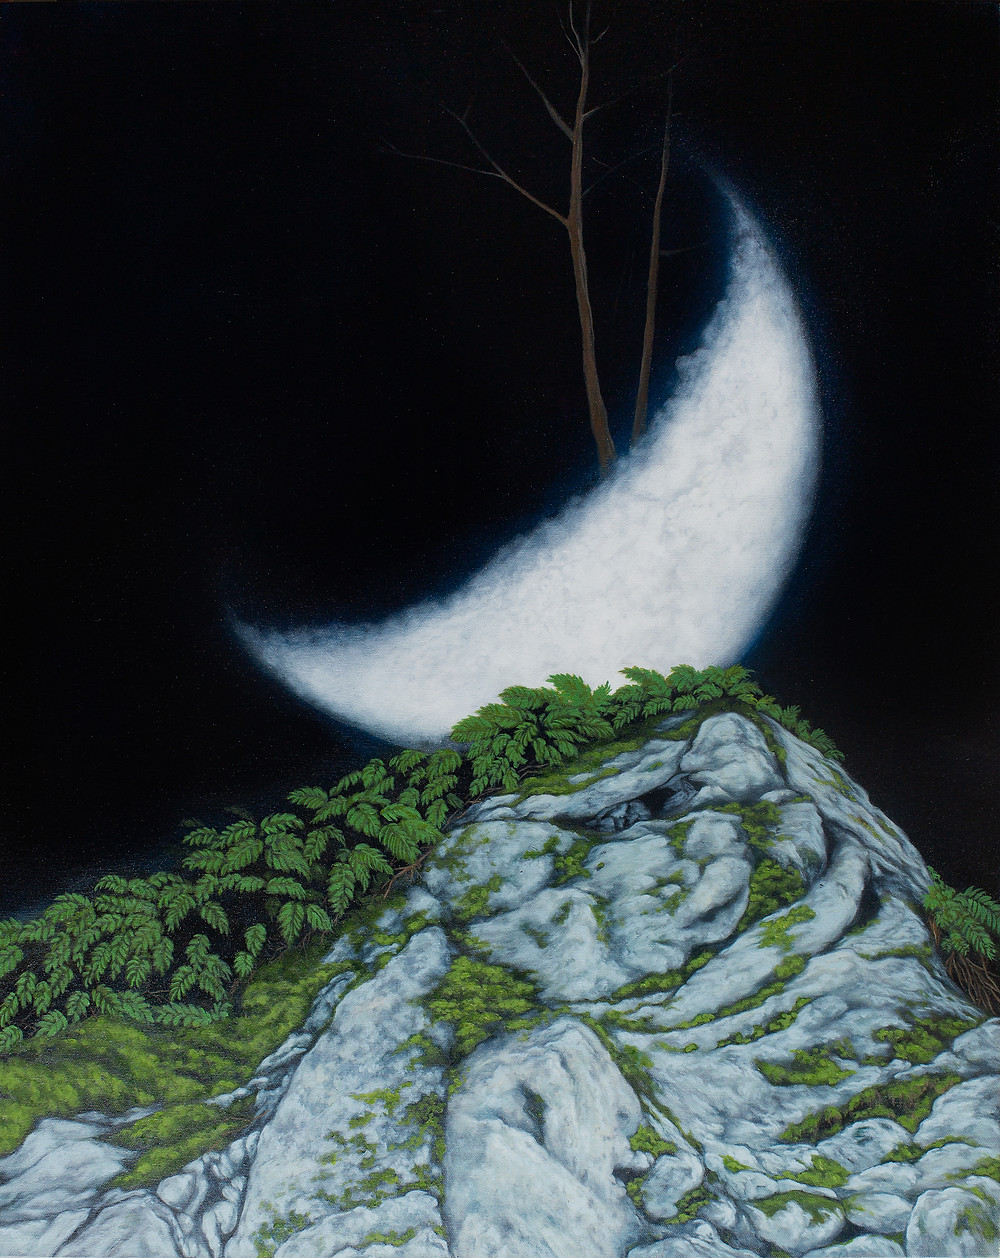 Moon quarter rising from the top of a greenish rocky hill on a pitch black night sky